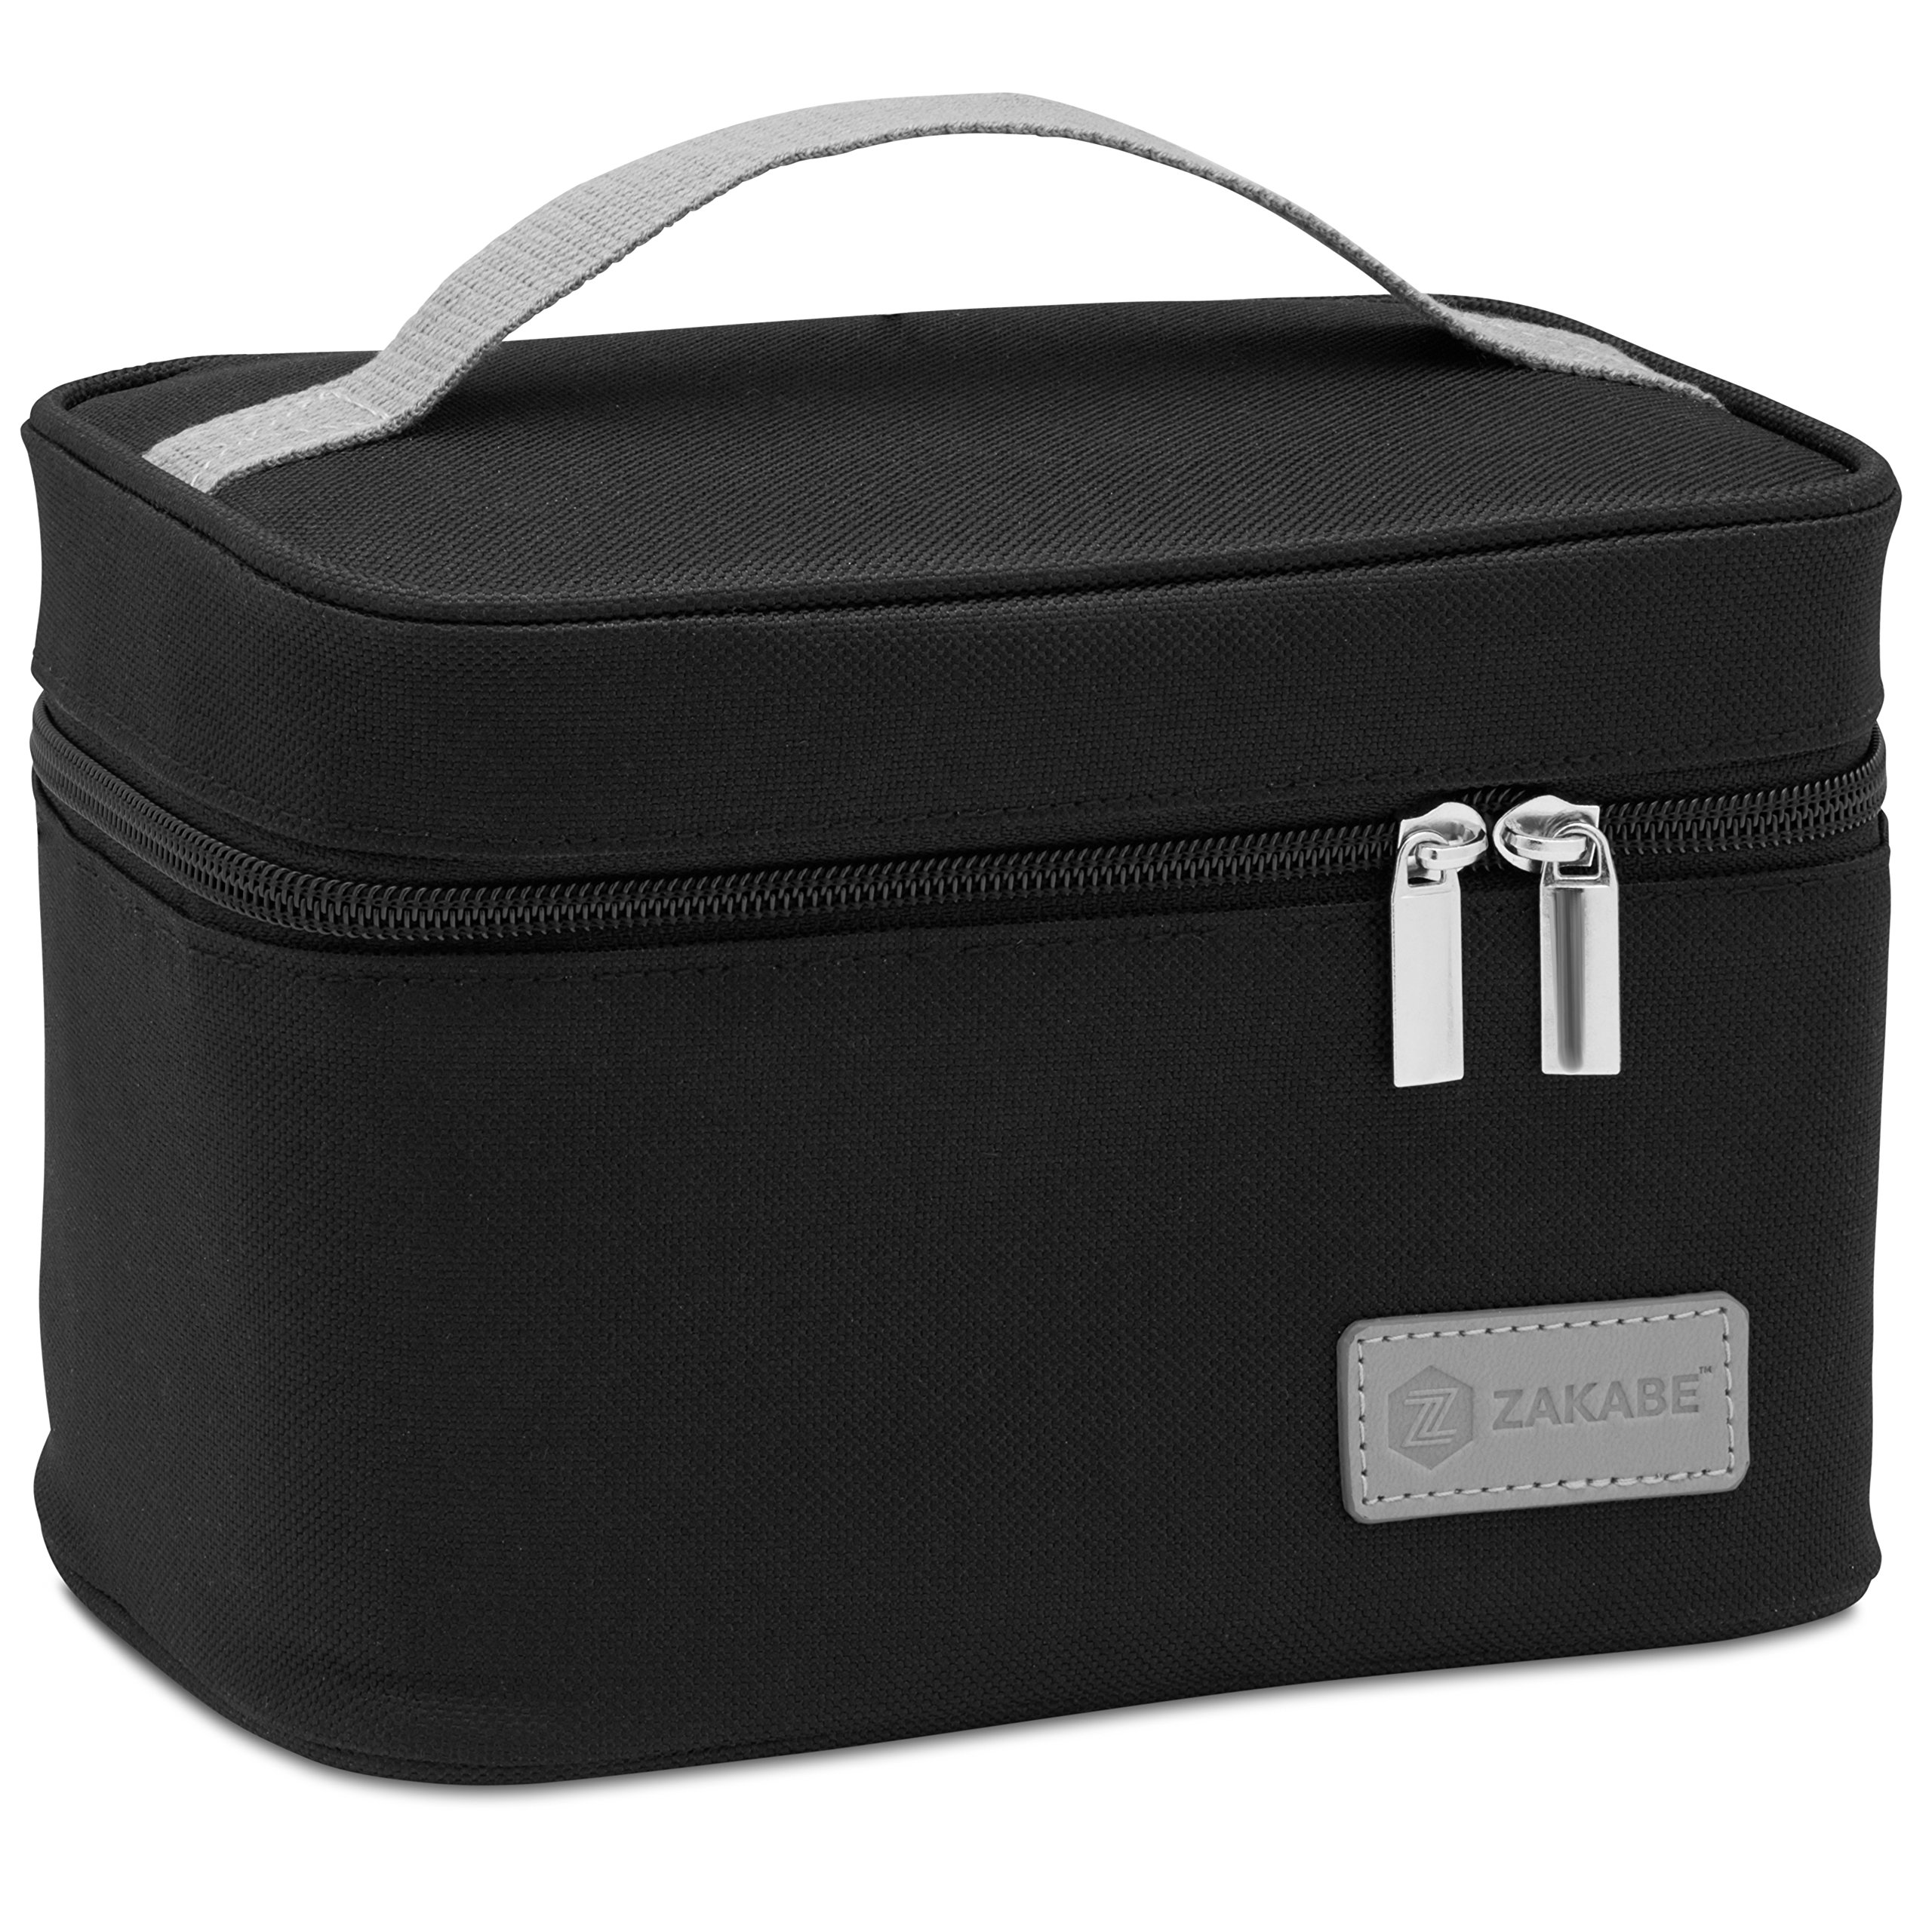 Zakabe Lunch Bag, Lunch Box, Cooler Bag, Set of 2 Sizes, Insulated, for Women, Kids, Adults, Men, Work or School - Black by Zakabe (Image #8)